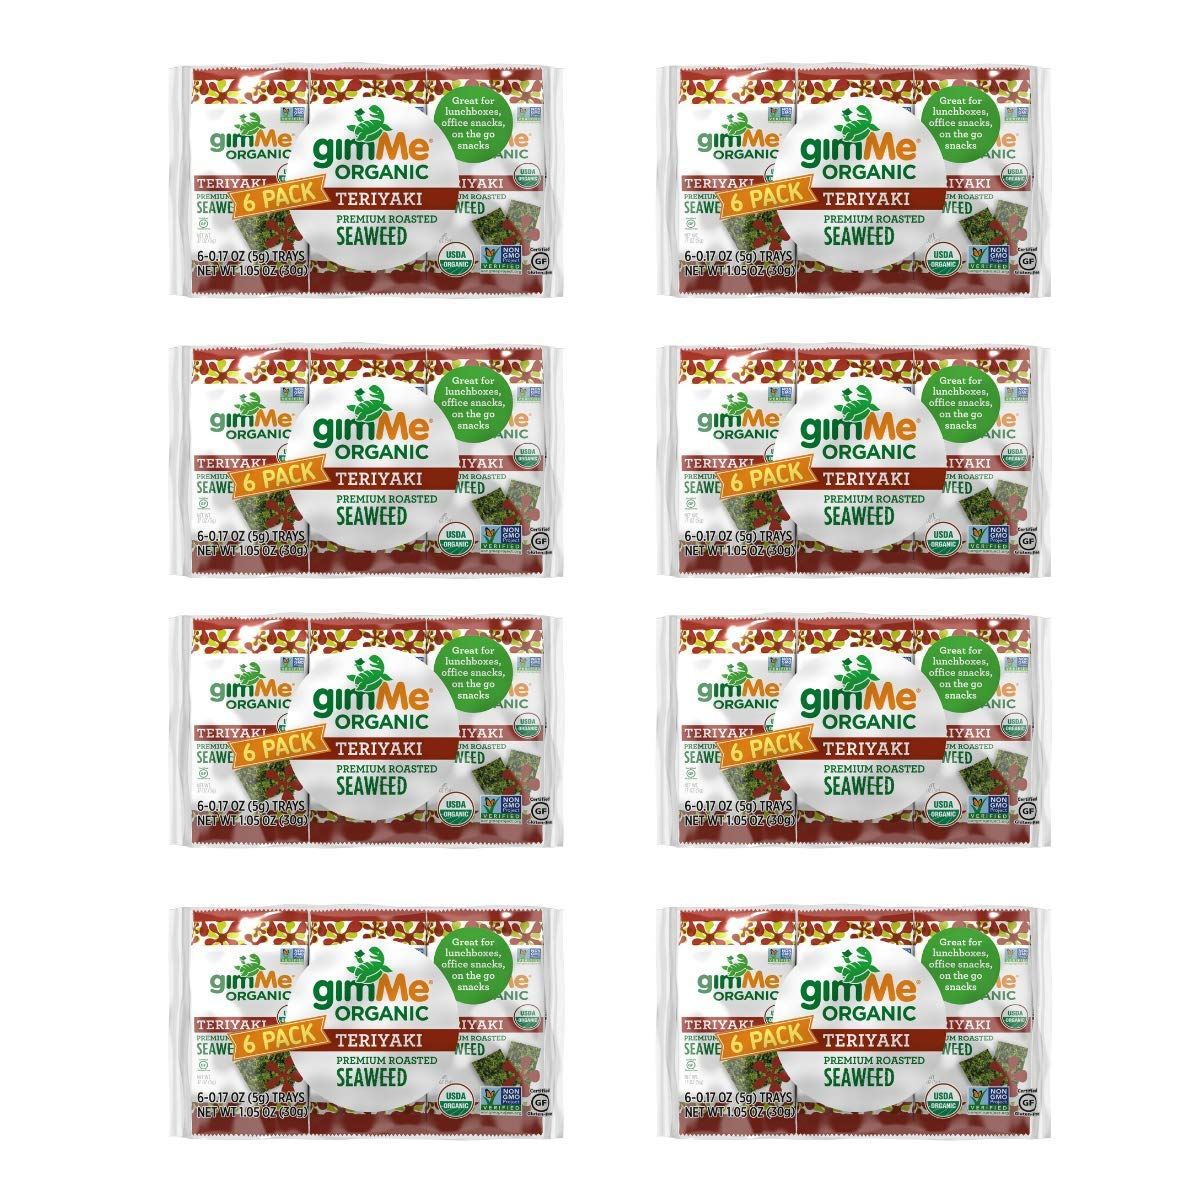 GimMe Health Foods Organic Roasted Seaweed Snack, Teriyaki, 0.17 ounce, (Pack of 48) by Gimme Health Foods (Image #1)